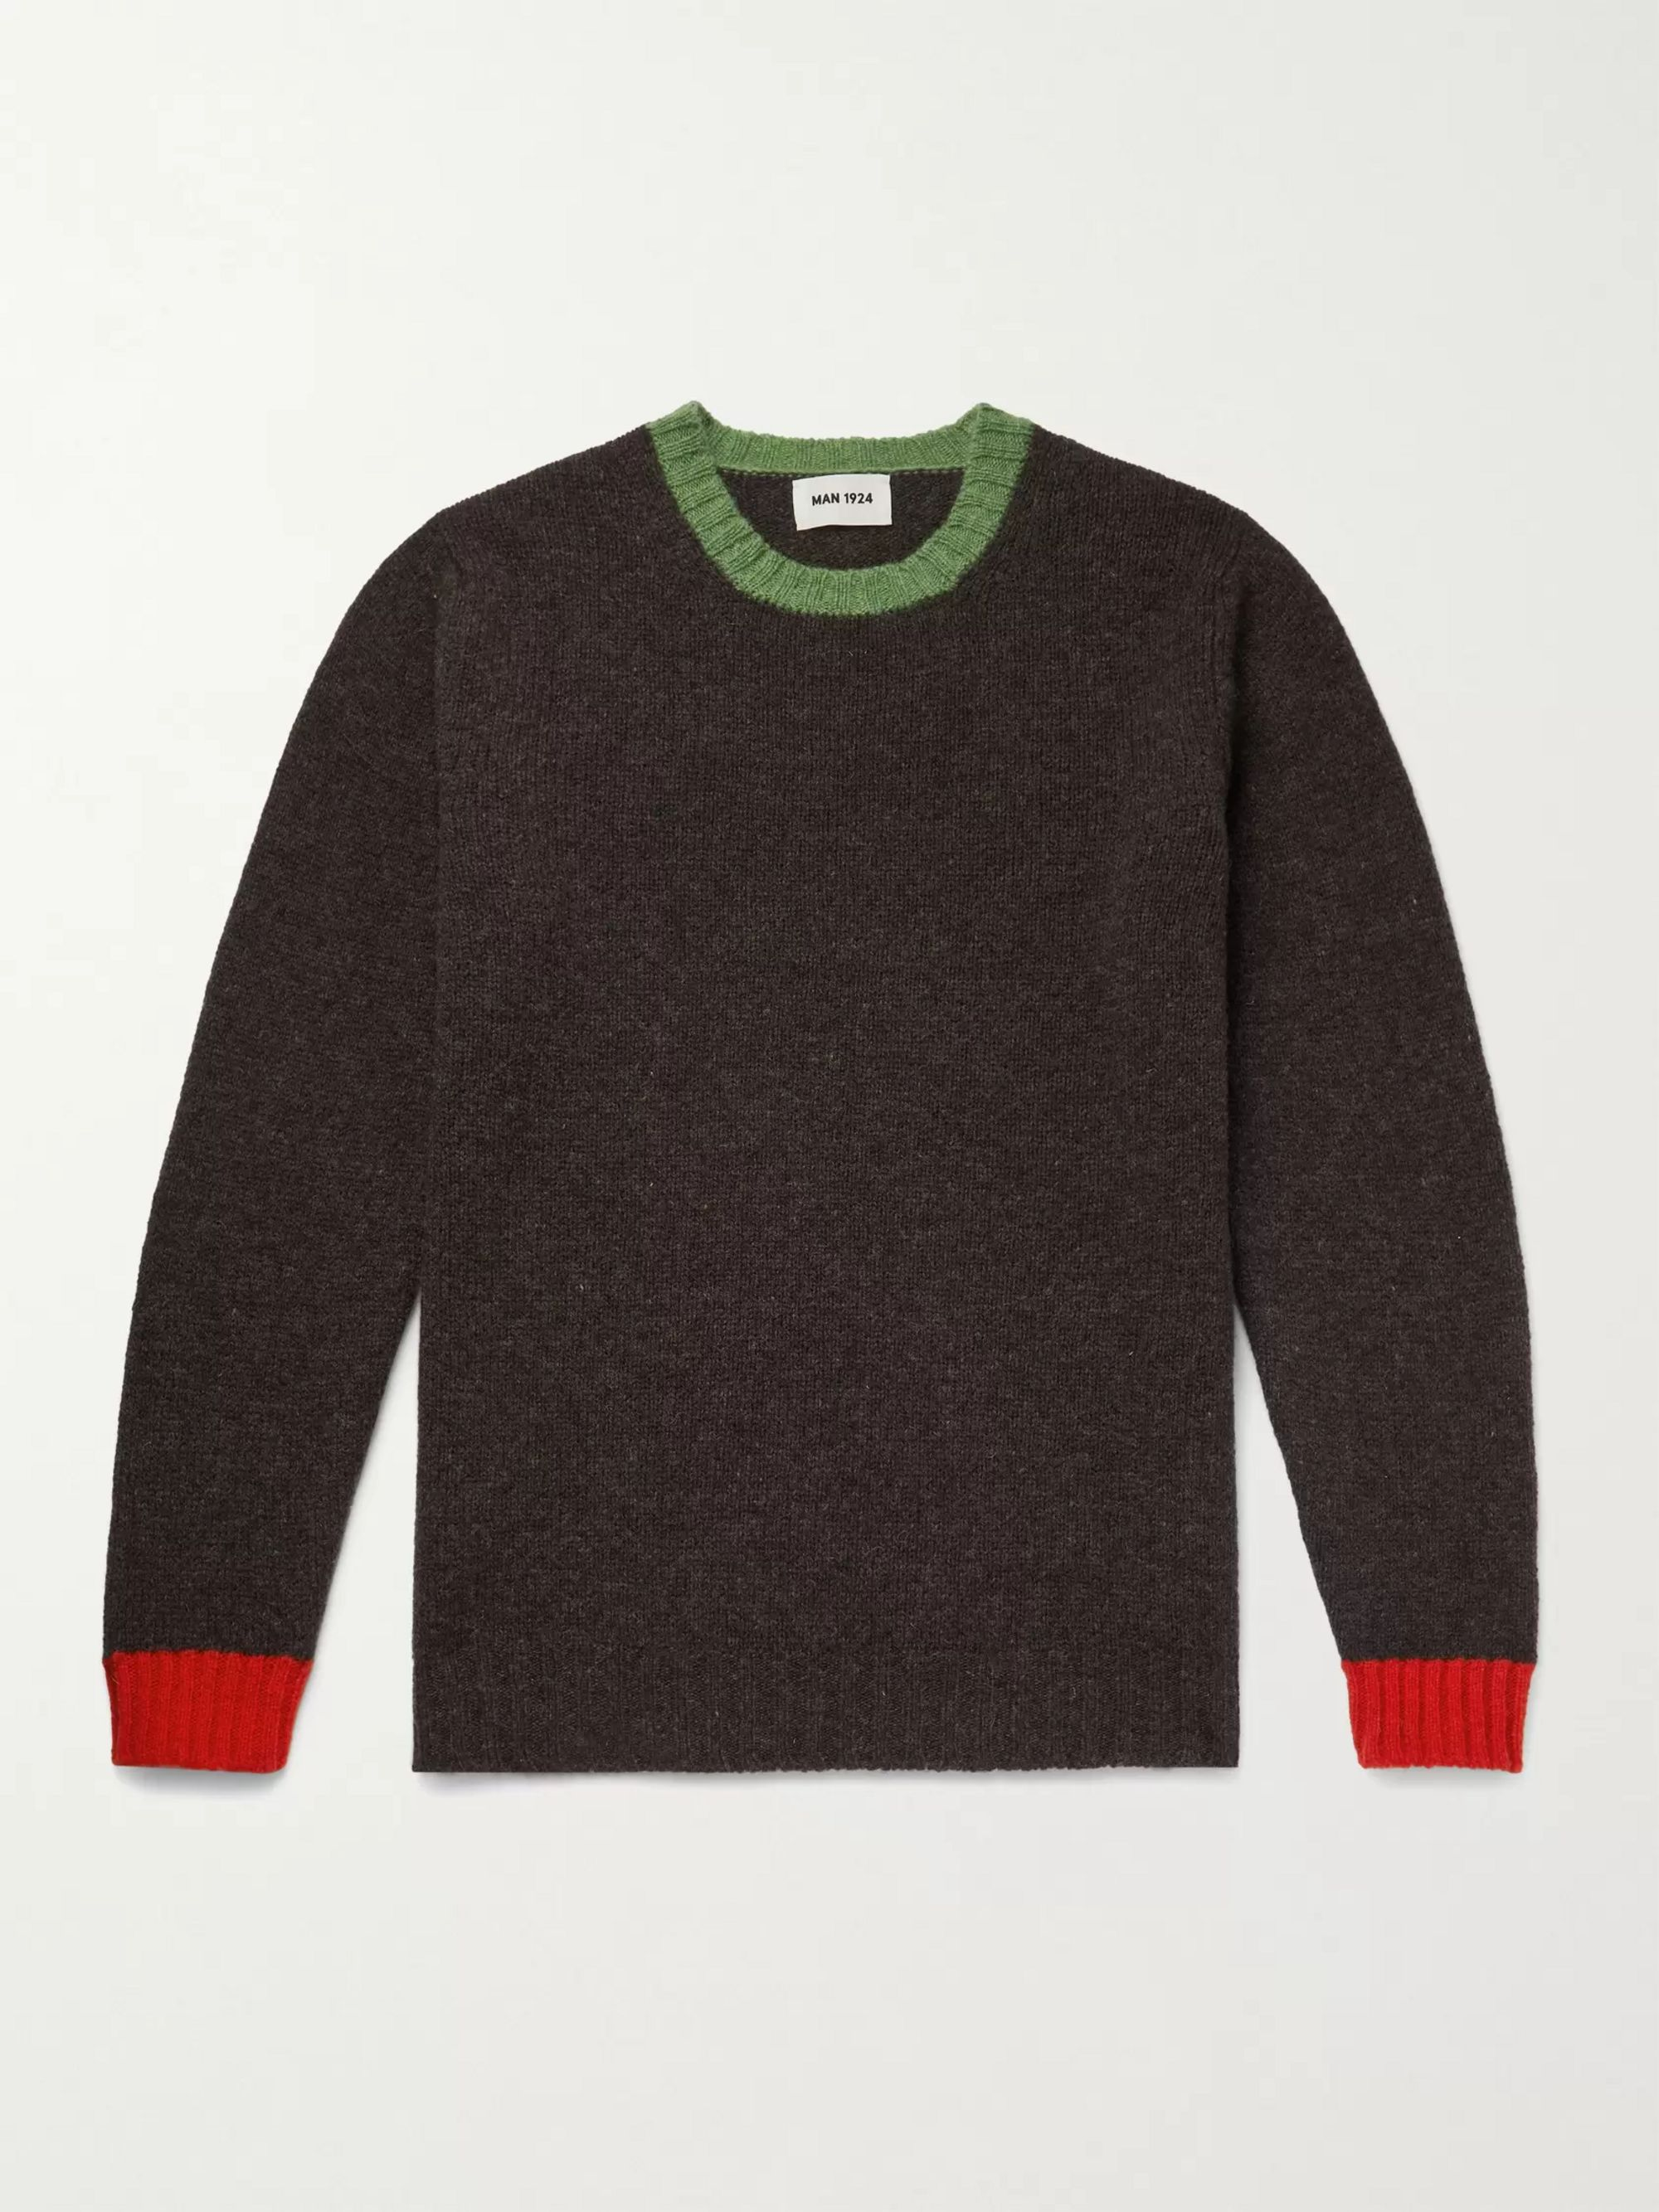 MAN 1924 Contrast-Tipped Virgin Wool Sweater